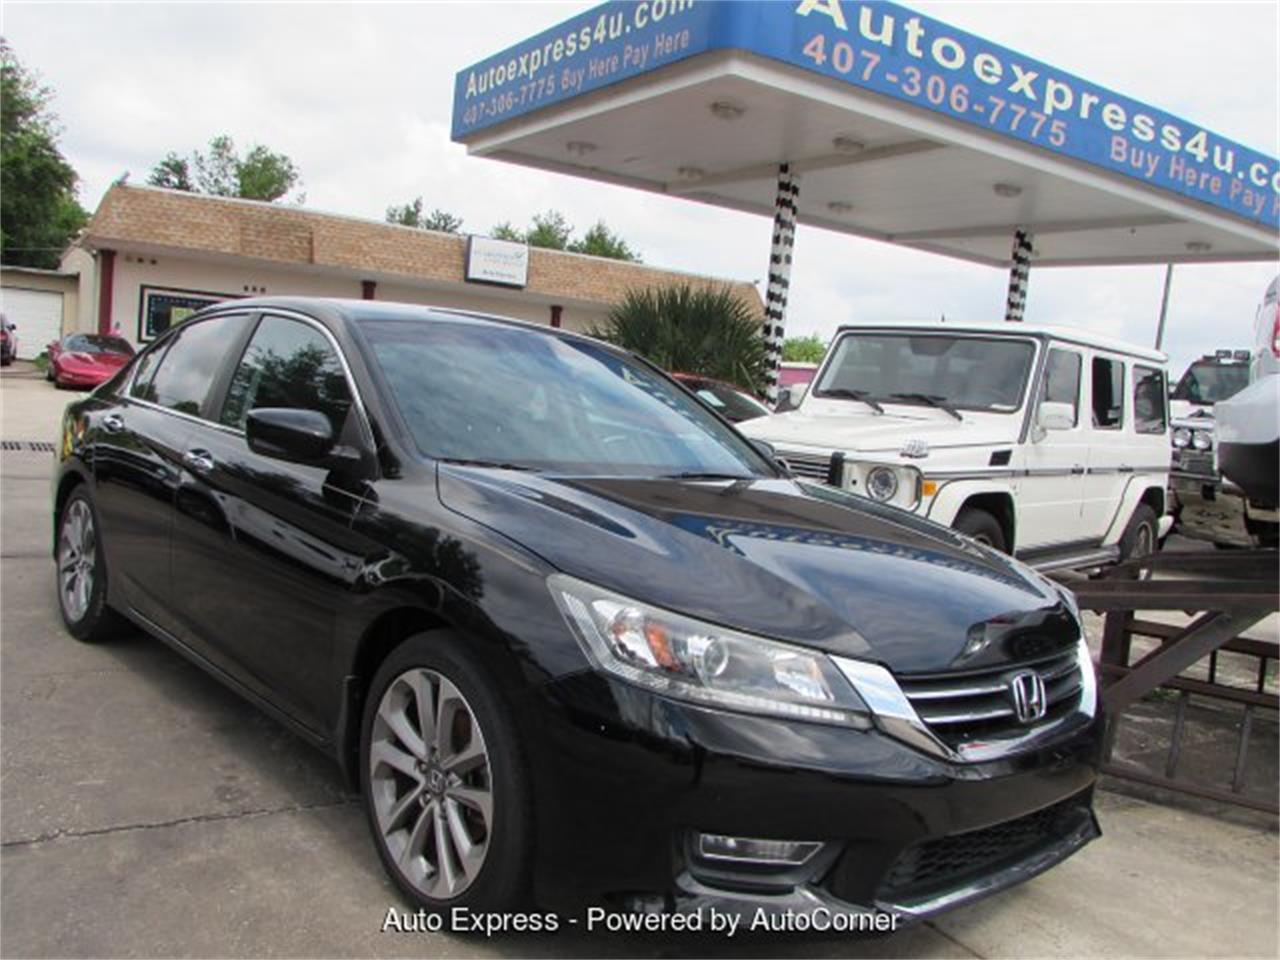 Honda Accord 2013 For Sale >> 2013 Honda Accord For Sale Classiccars Com Cc 1134894